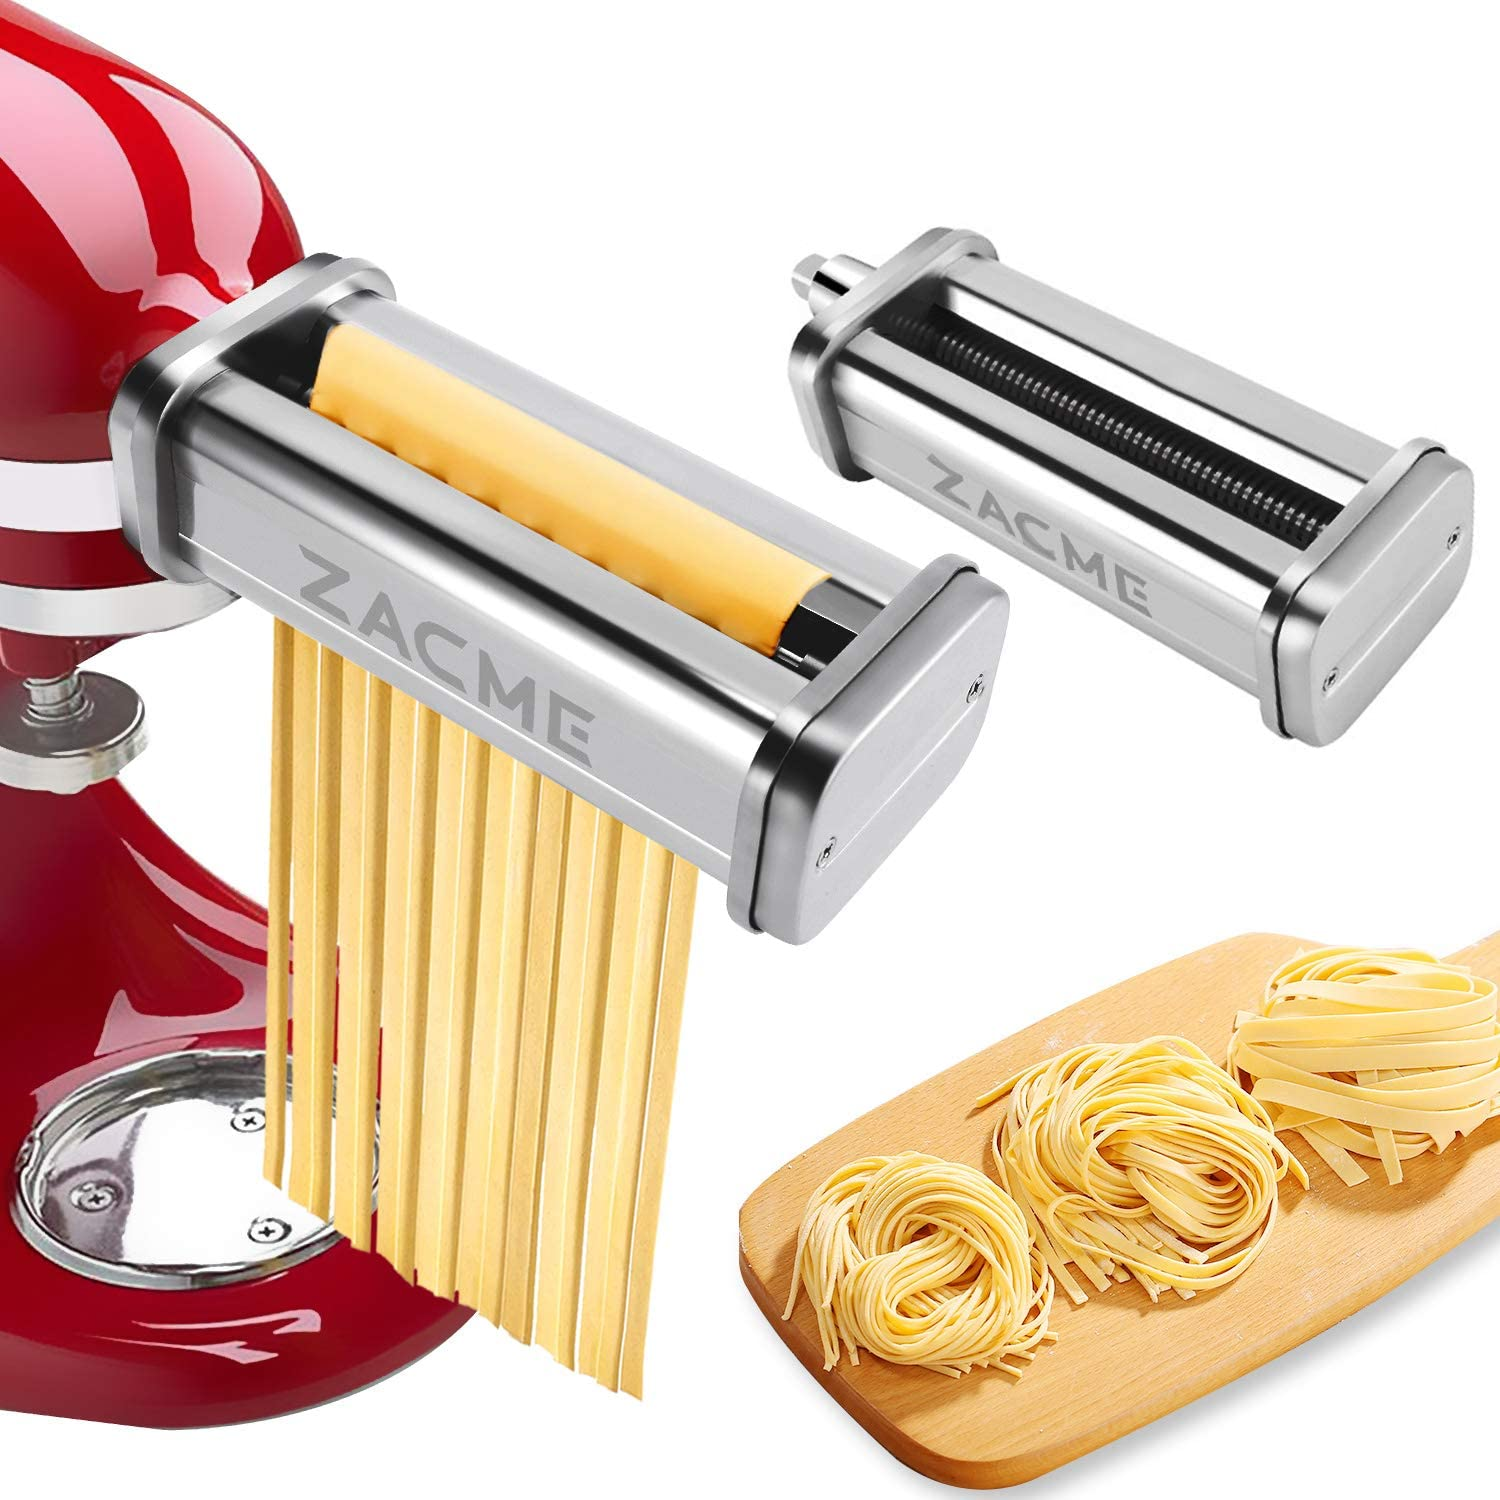 Pasta Cutter Set for KitchenAid Stand Mixers, Washable Stainless